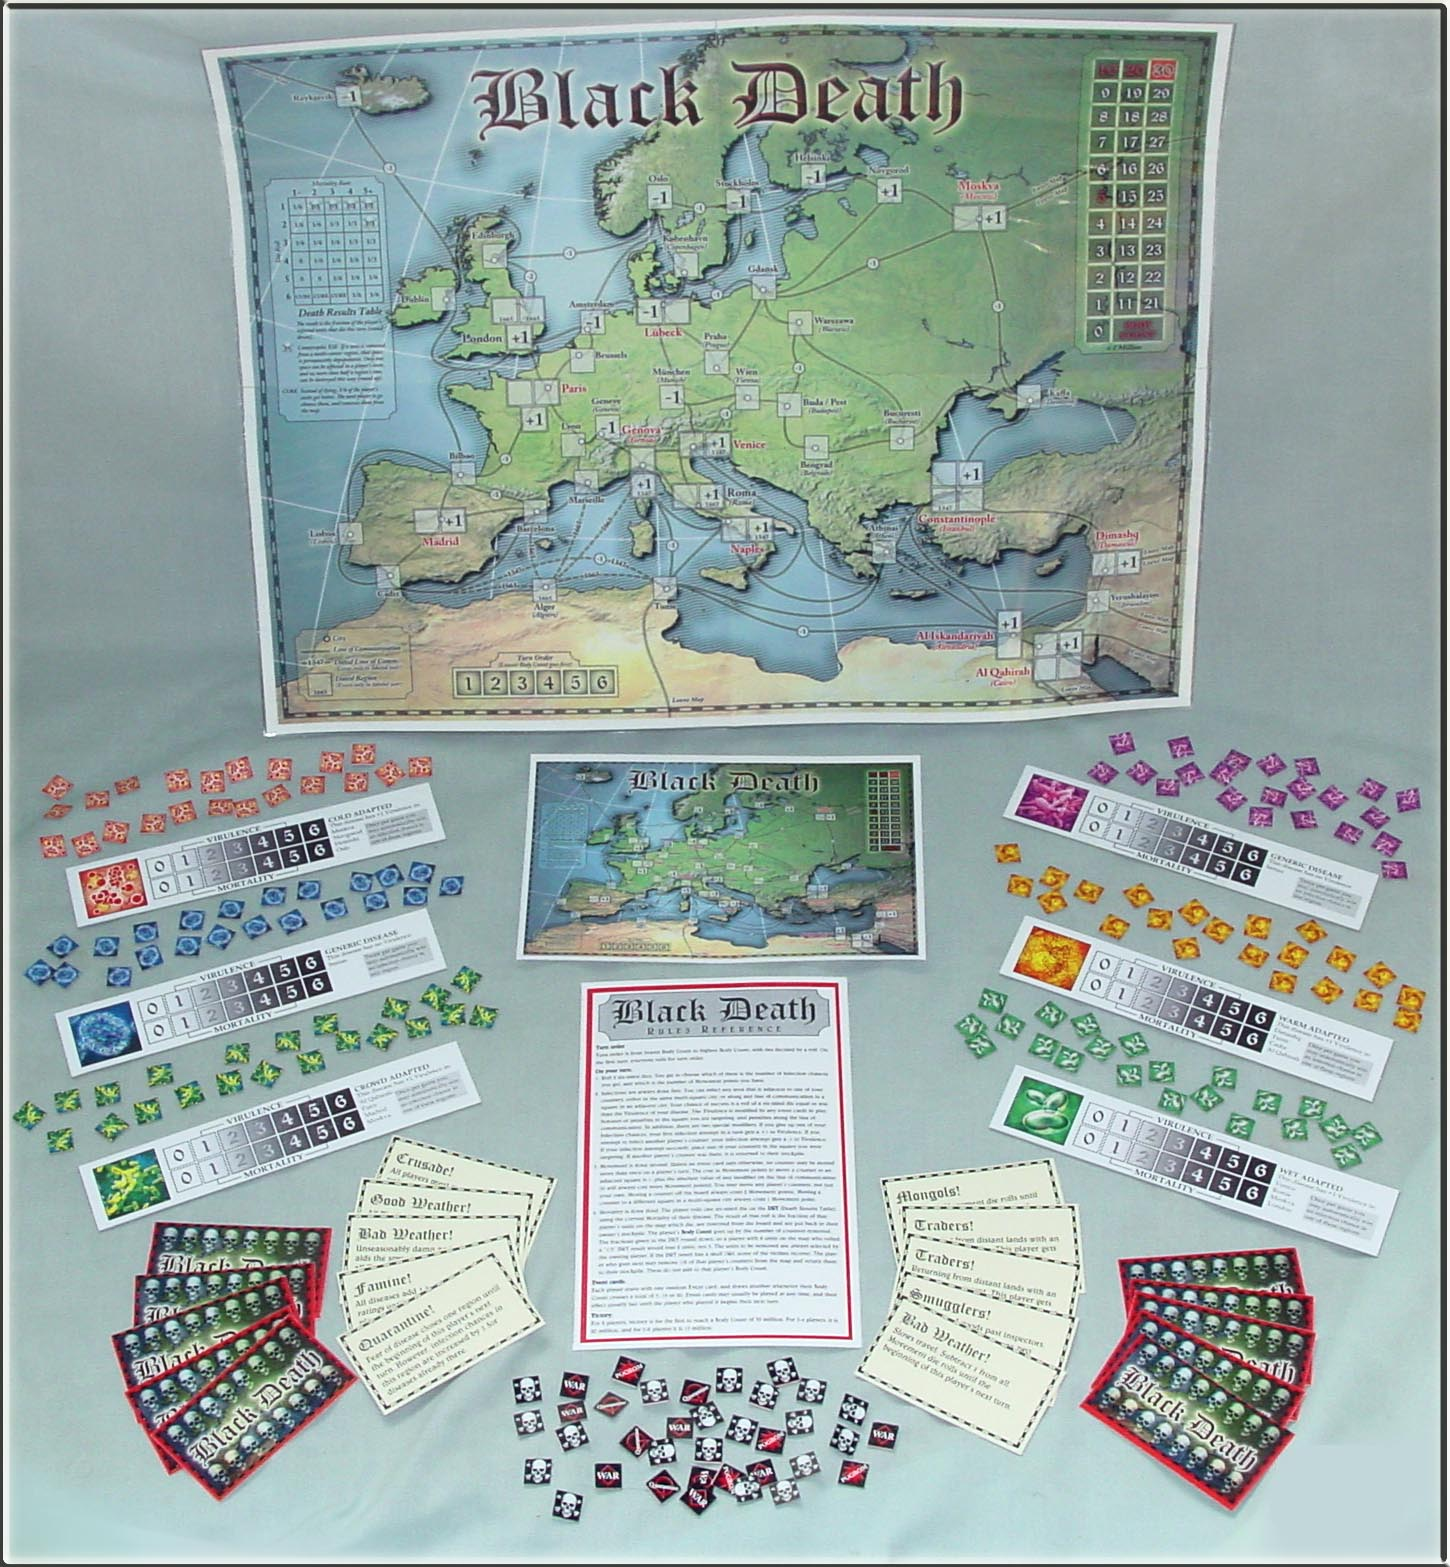 Black Death assembled